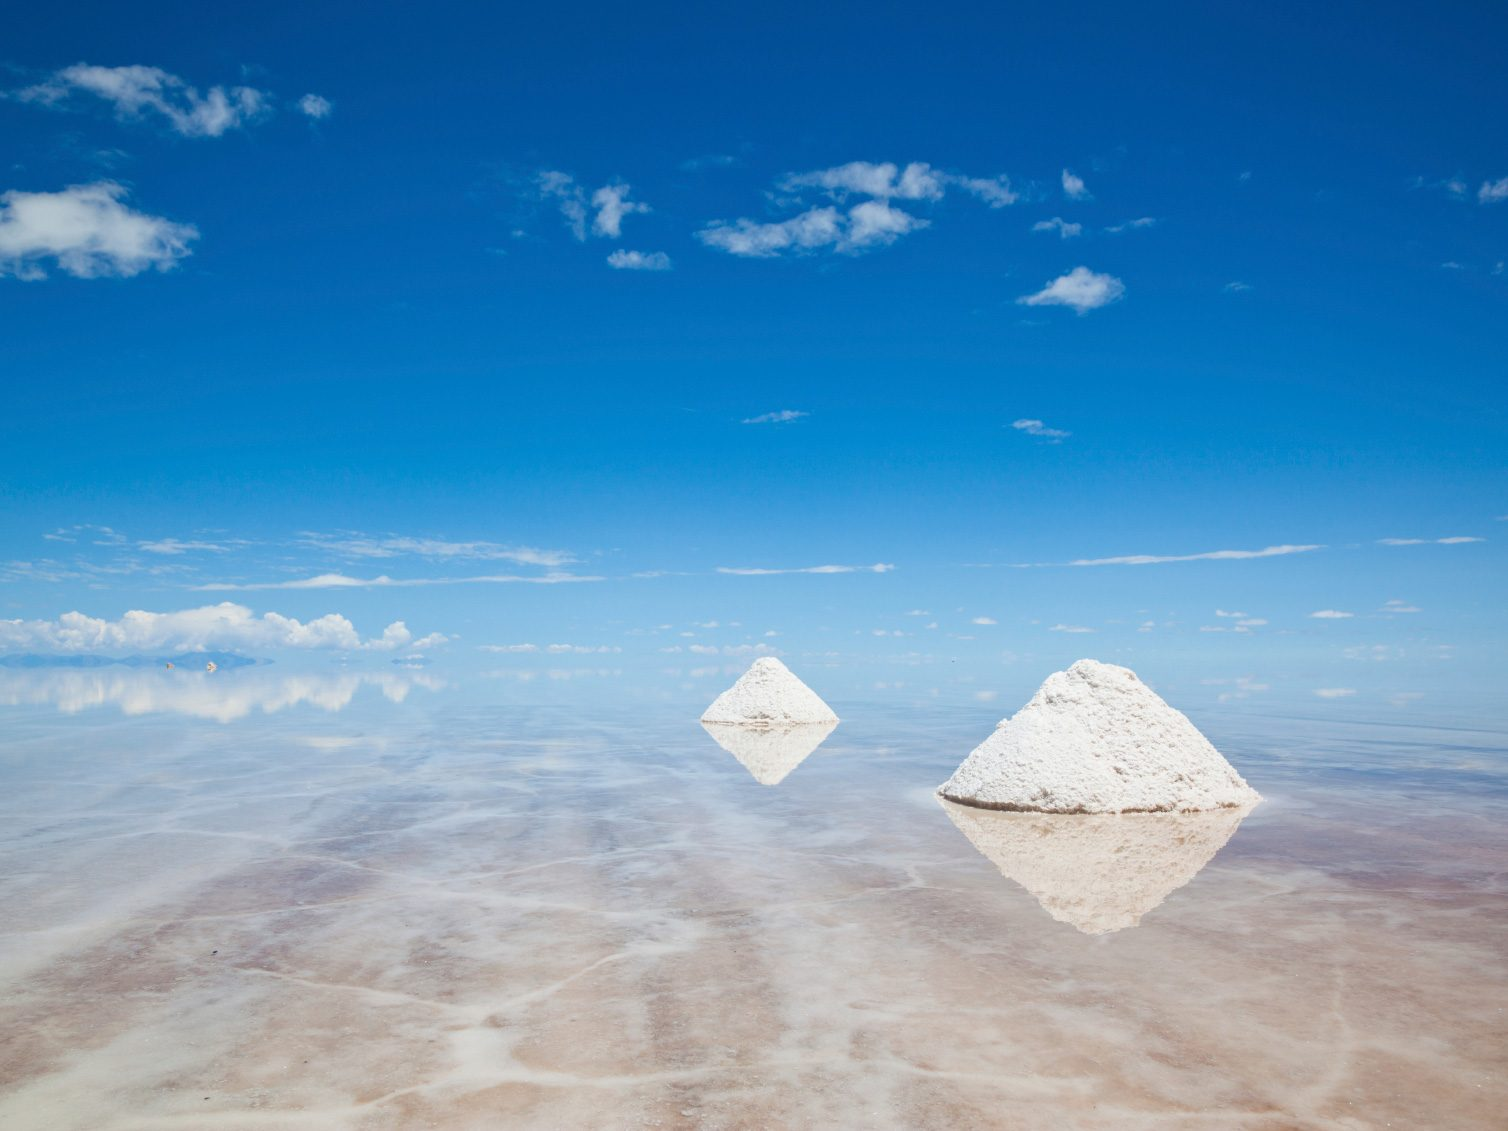 The Natural Wonder of Bolivia: Salar De Uyuni